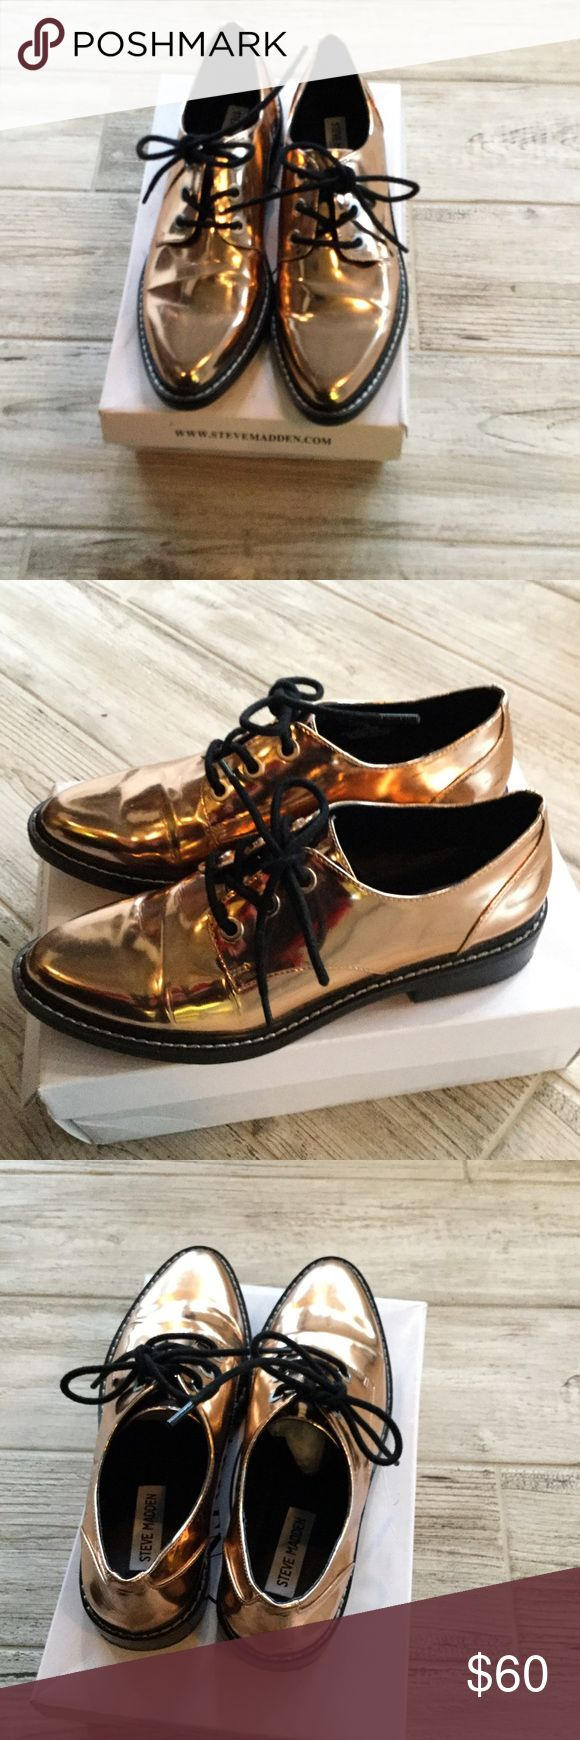 Super cool rose gold metallic oxfords Steve Madden rose gold metallic oxfords. The new trend featured on runways by major designers without the price tag. Worn once . Great condition... Size 8 and true to size. Steve Madden Shoes Flats & Loafers